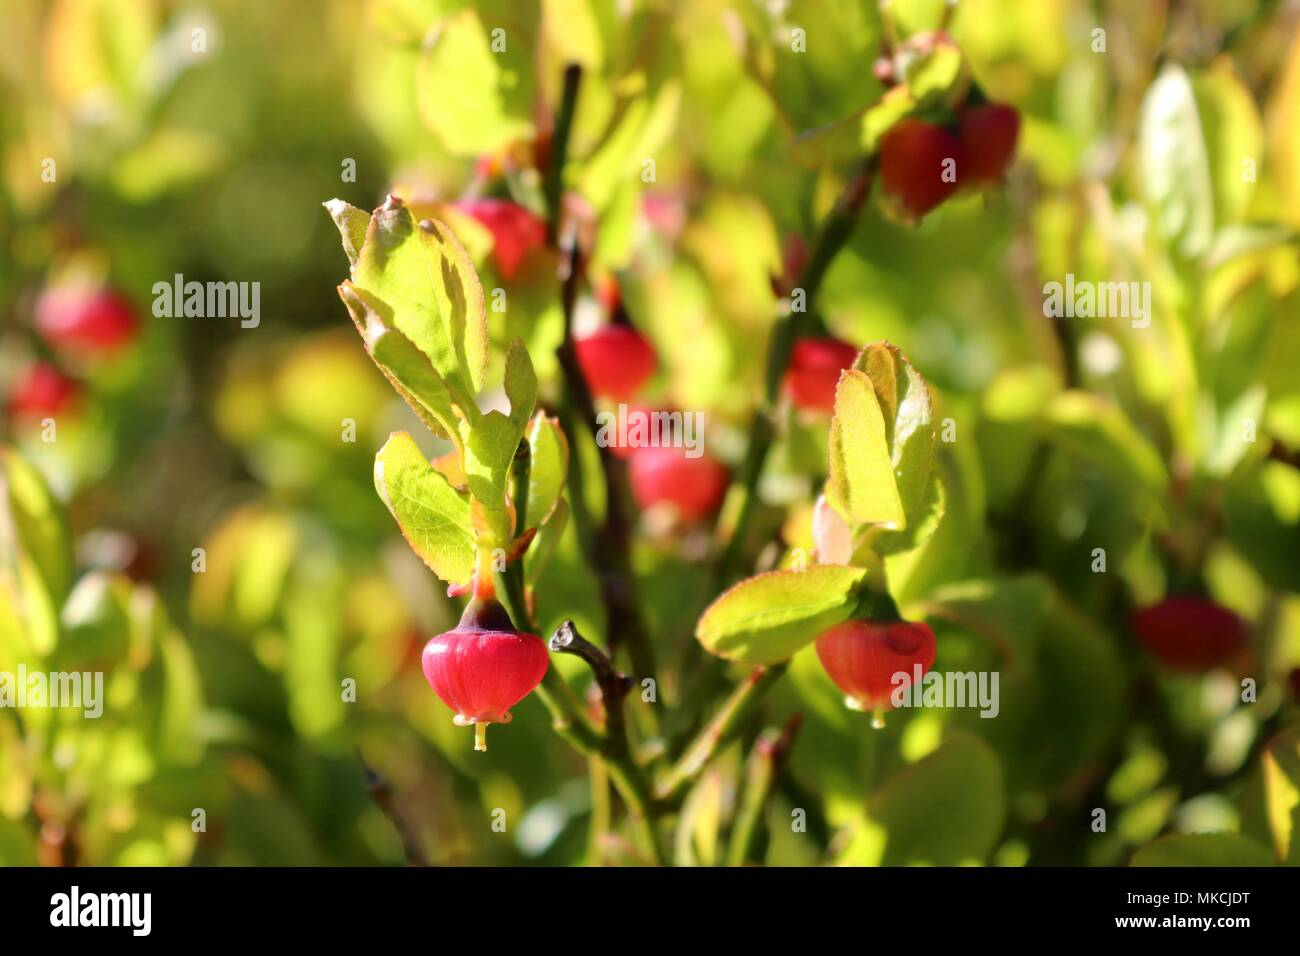 close-up of wild lowbush blueberries, unripe in springtime, green pink in a stage of maturation - Stock Image